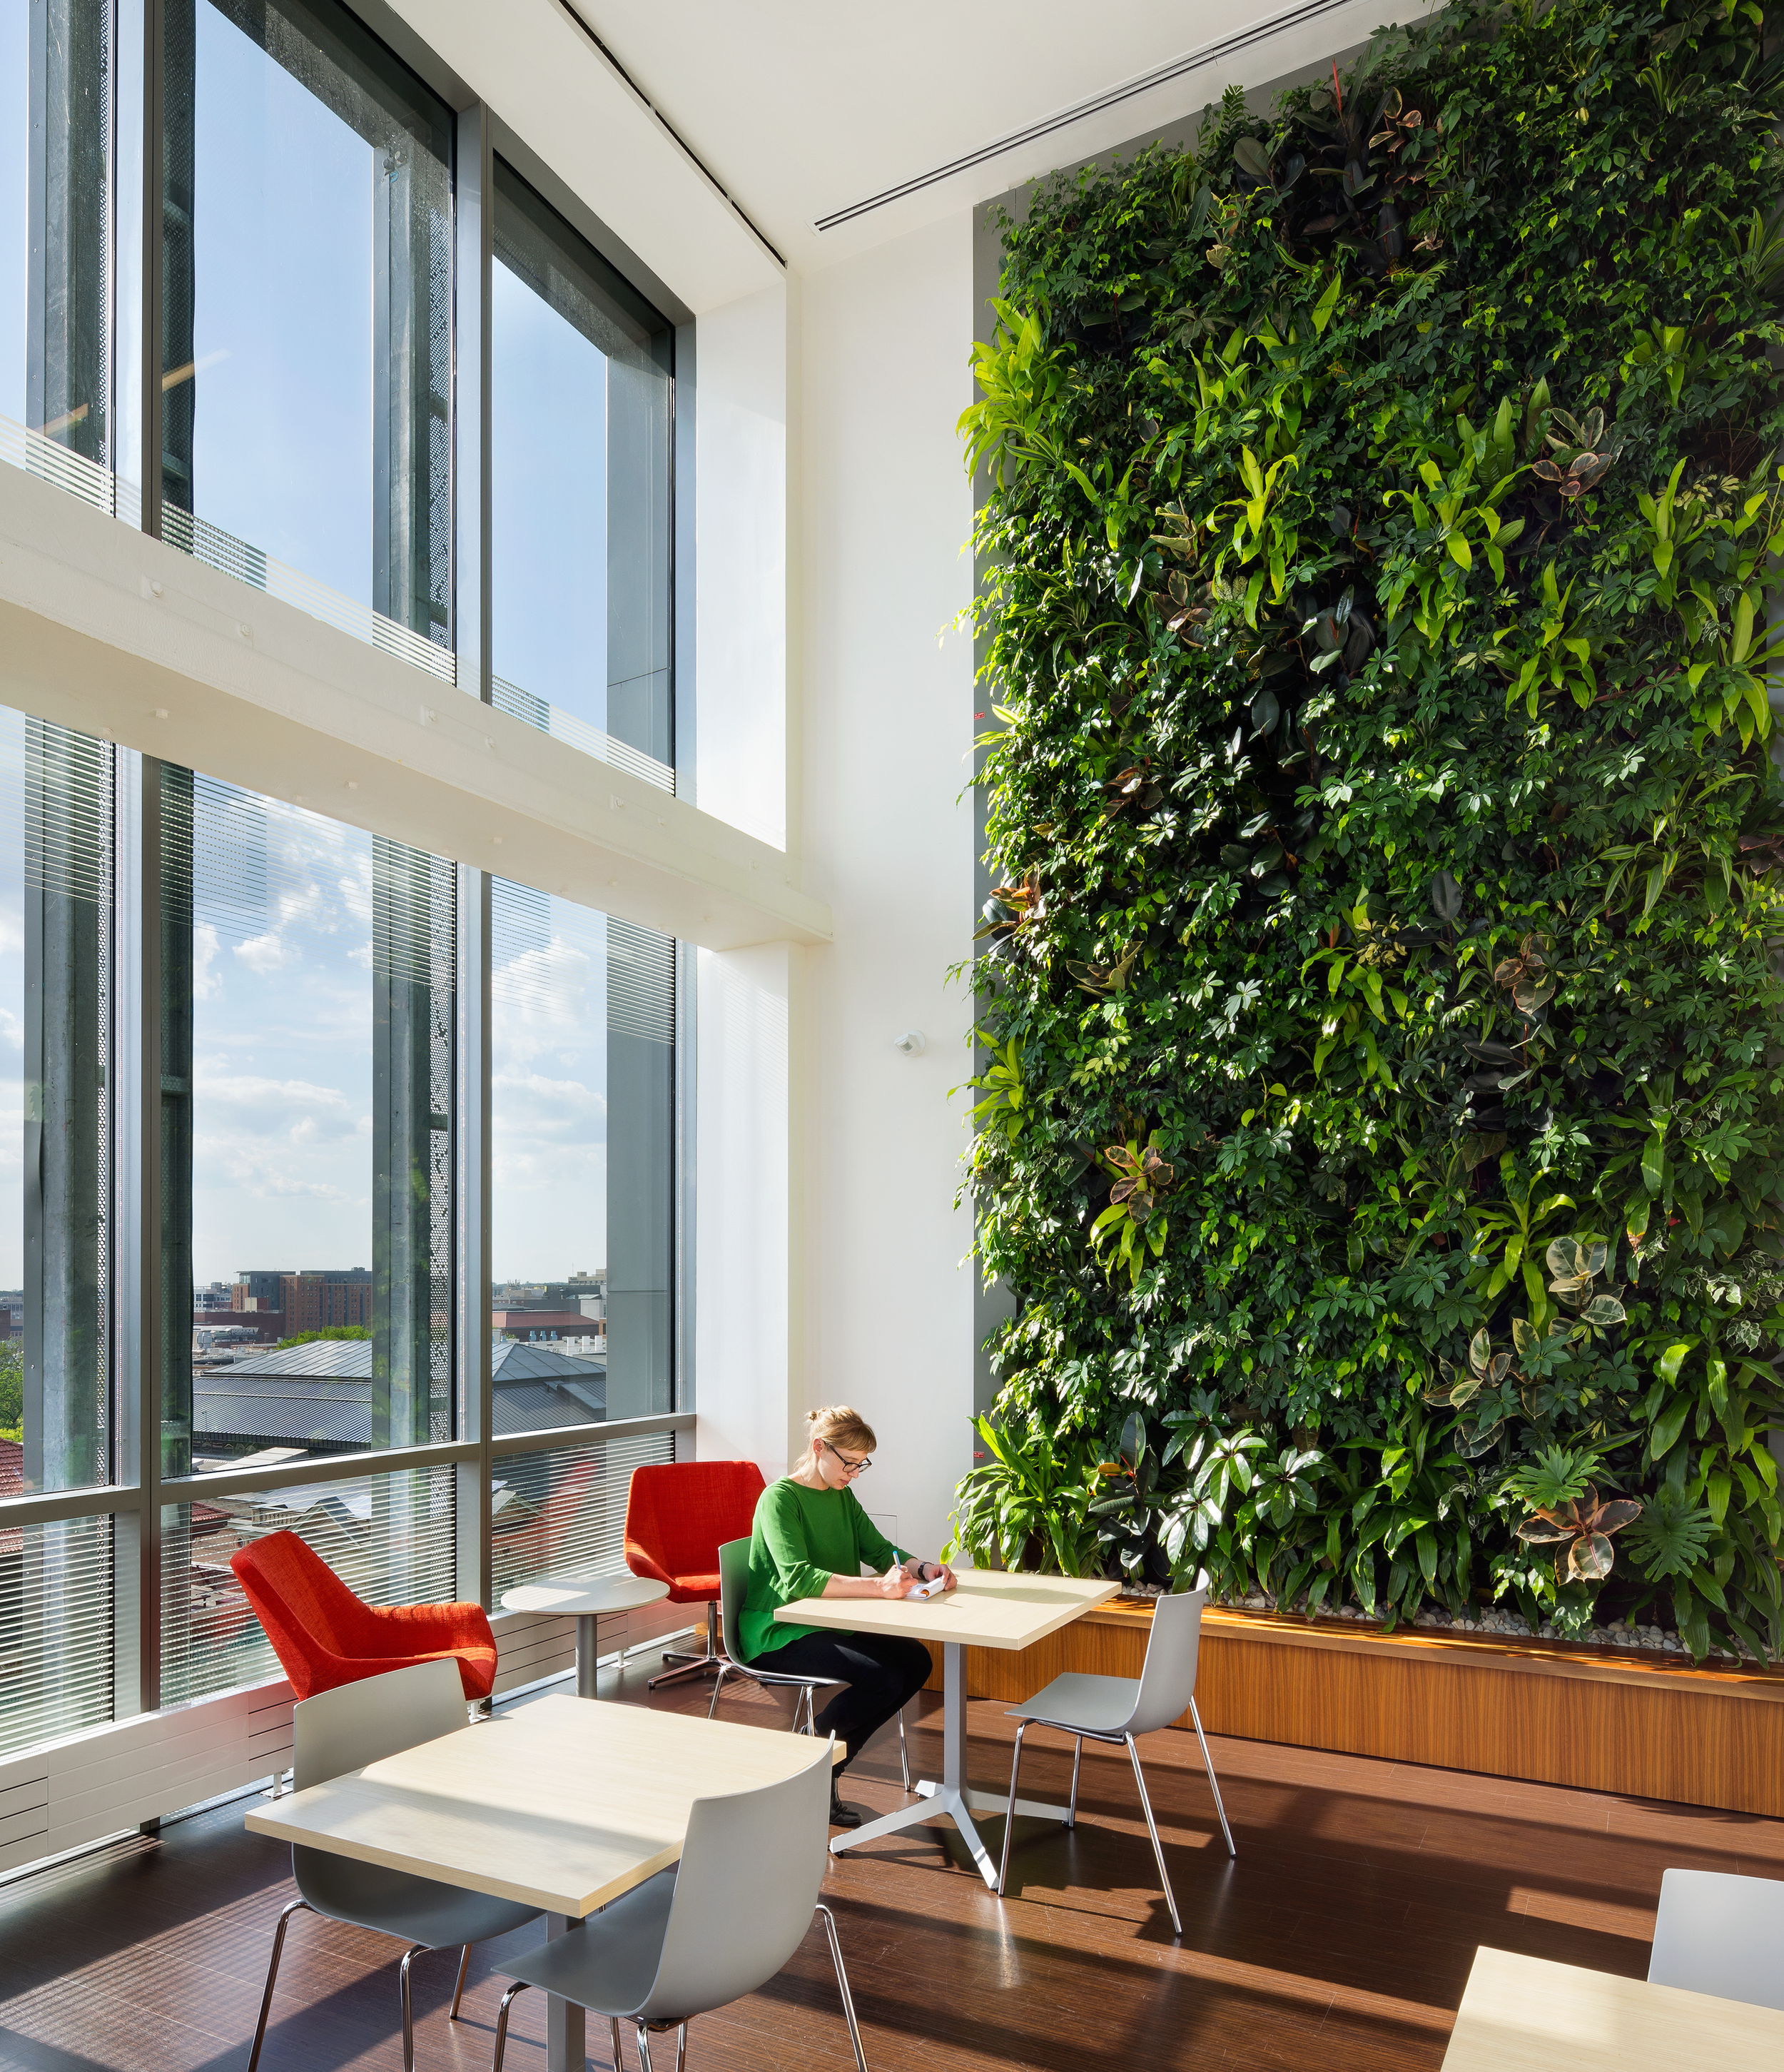 P18-19_Awards_Design_InteriorGreenWall_WeiserHall-InteriorCommunityCommonsLounge-Credit_TomArban.png